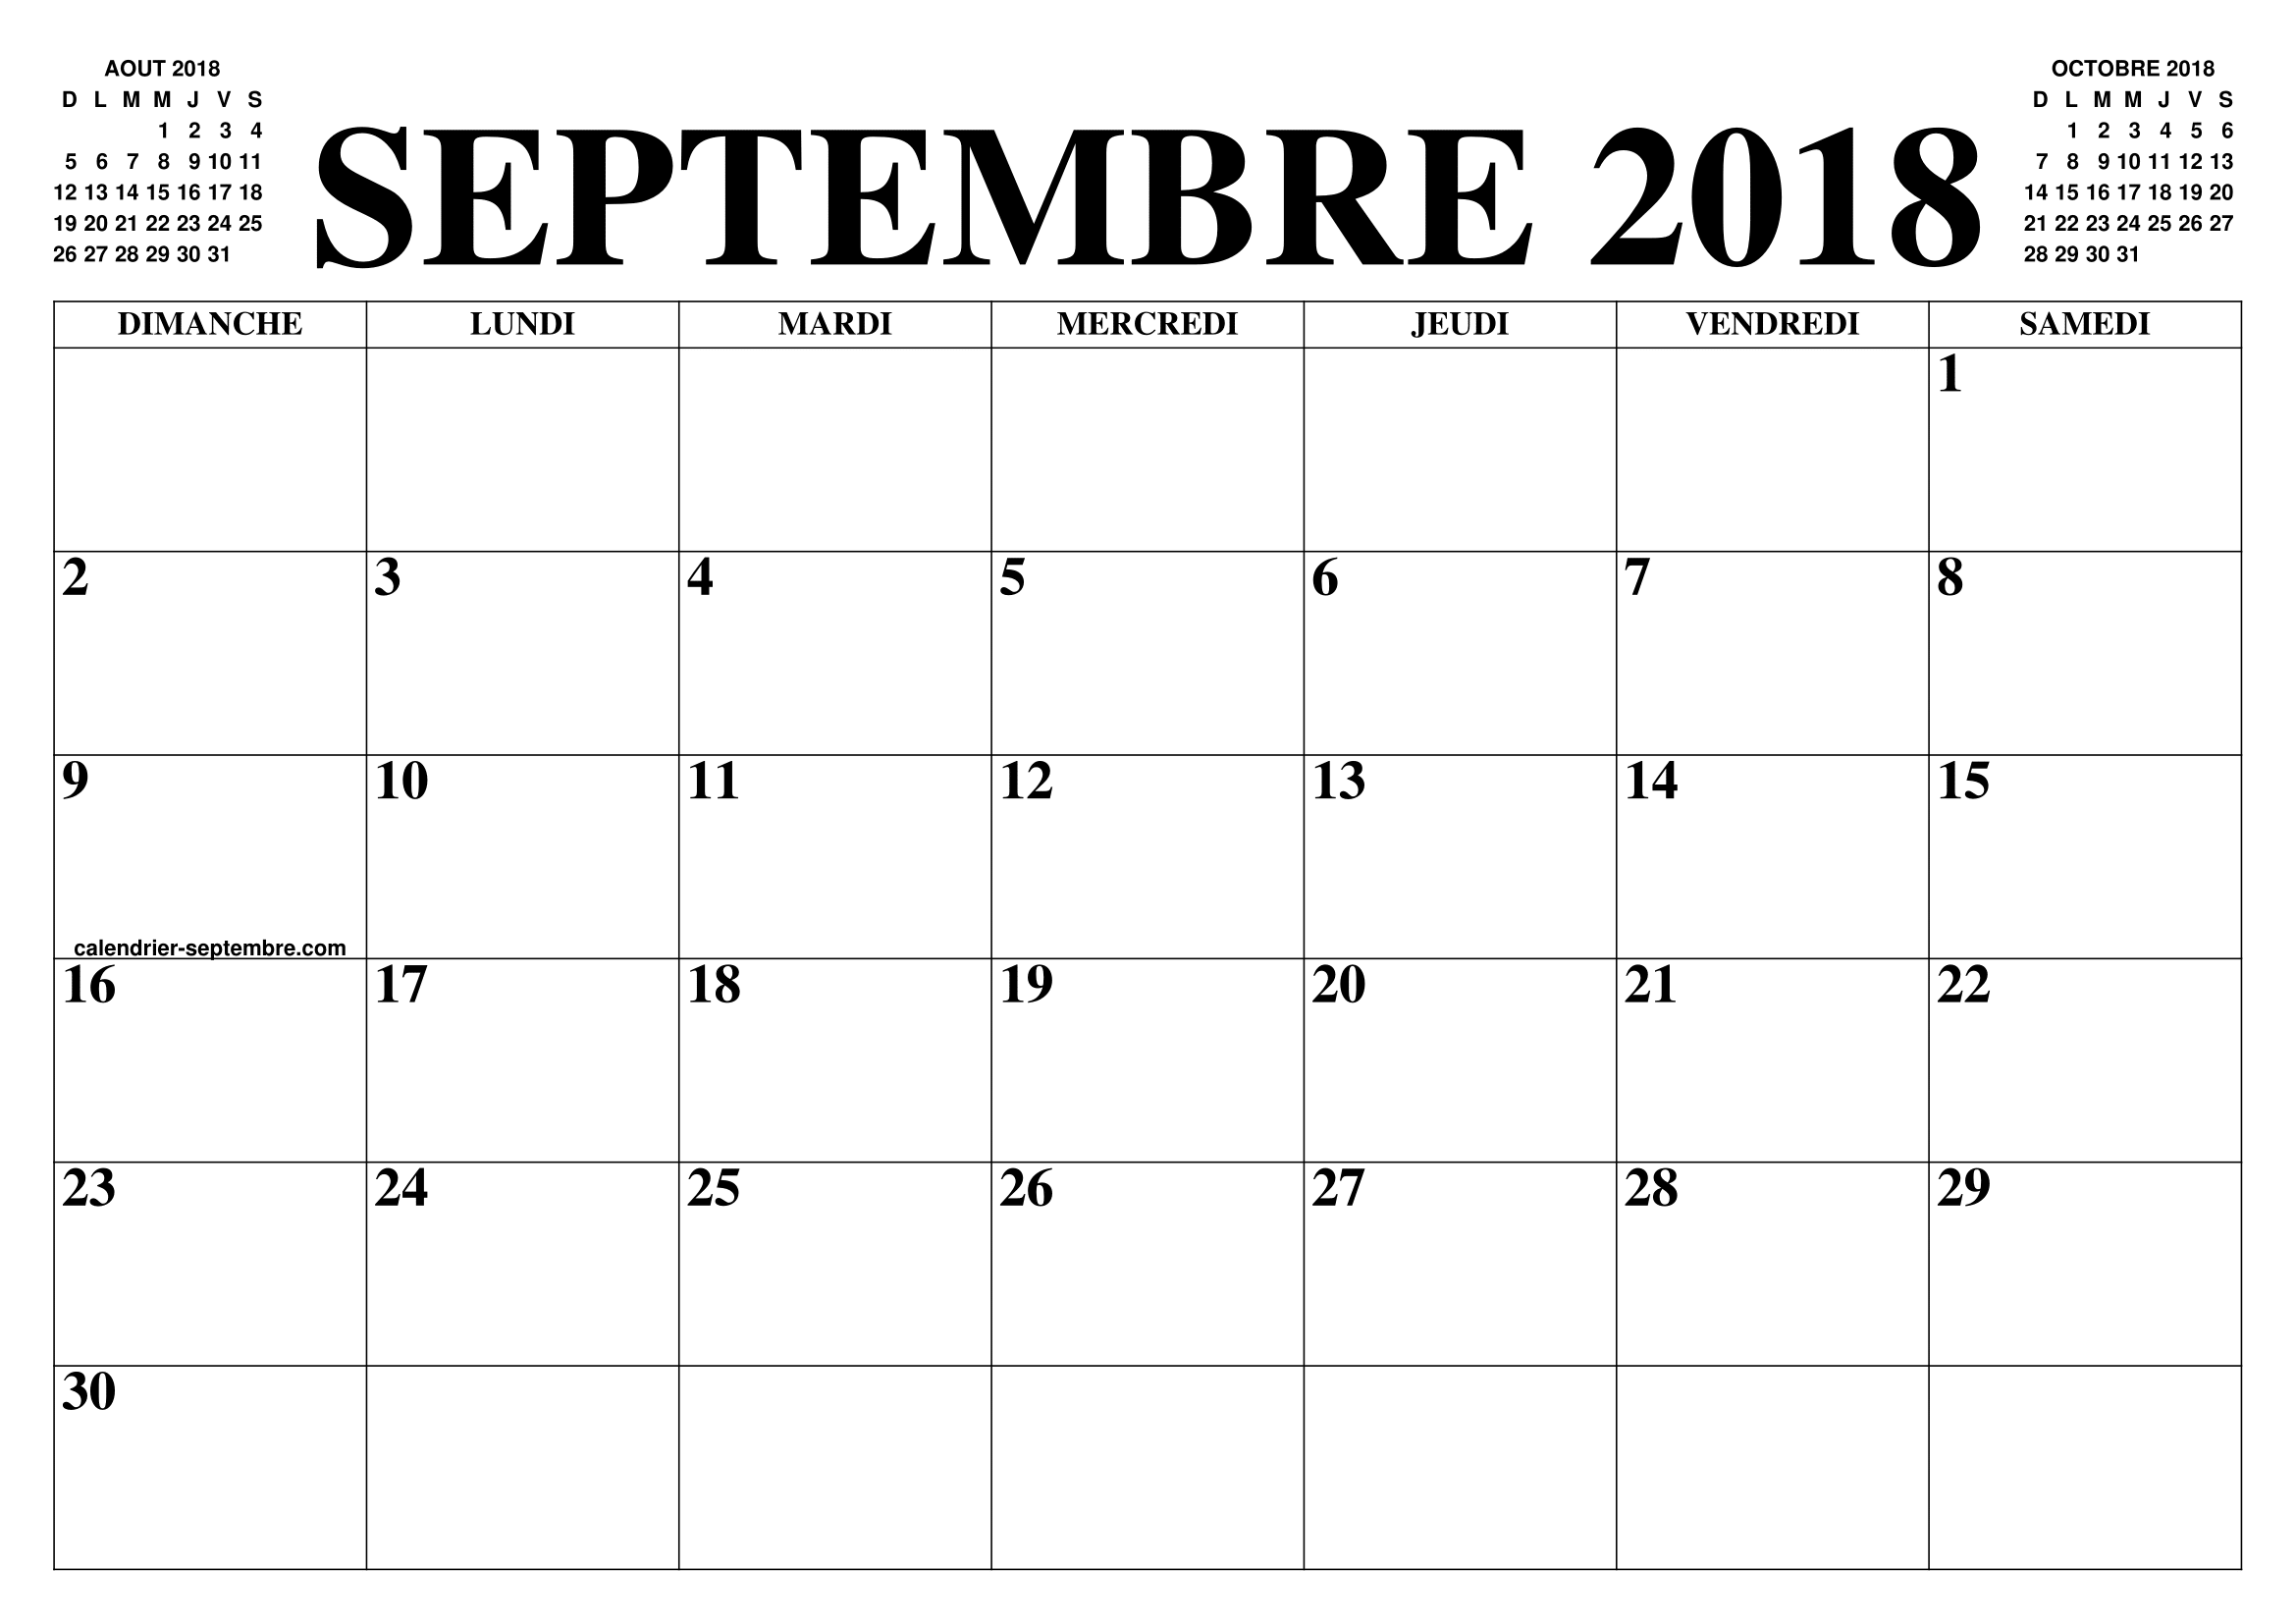 calendrier septembre 2018 2019 le calendrier du mois de septembre 2018 2019 gratuit a. Black Bedroom Furniture Sets. Home Design Ideas